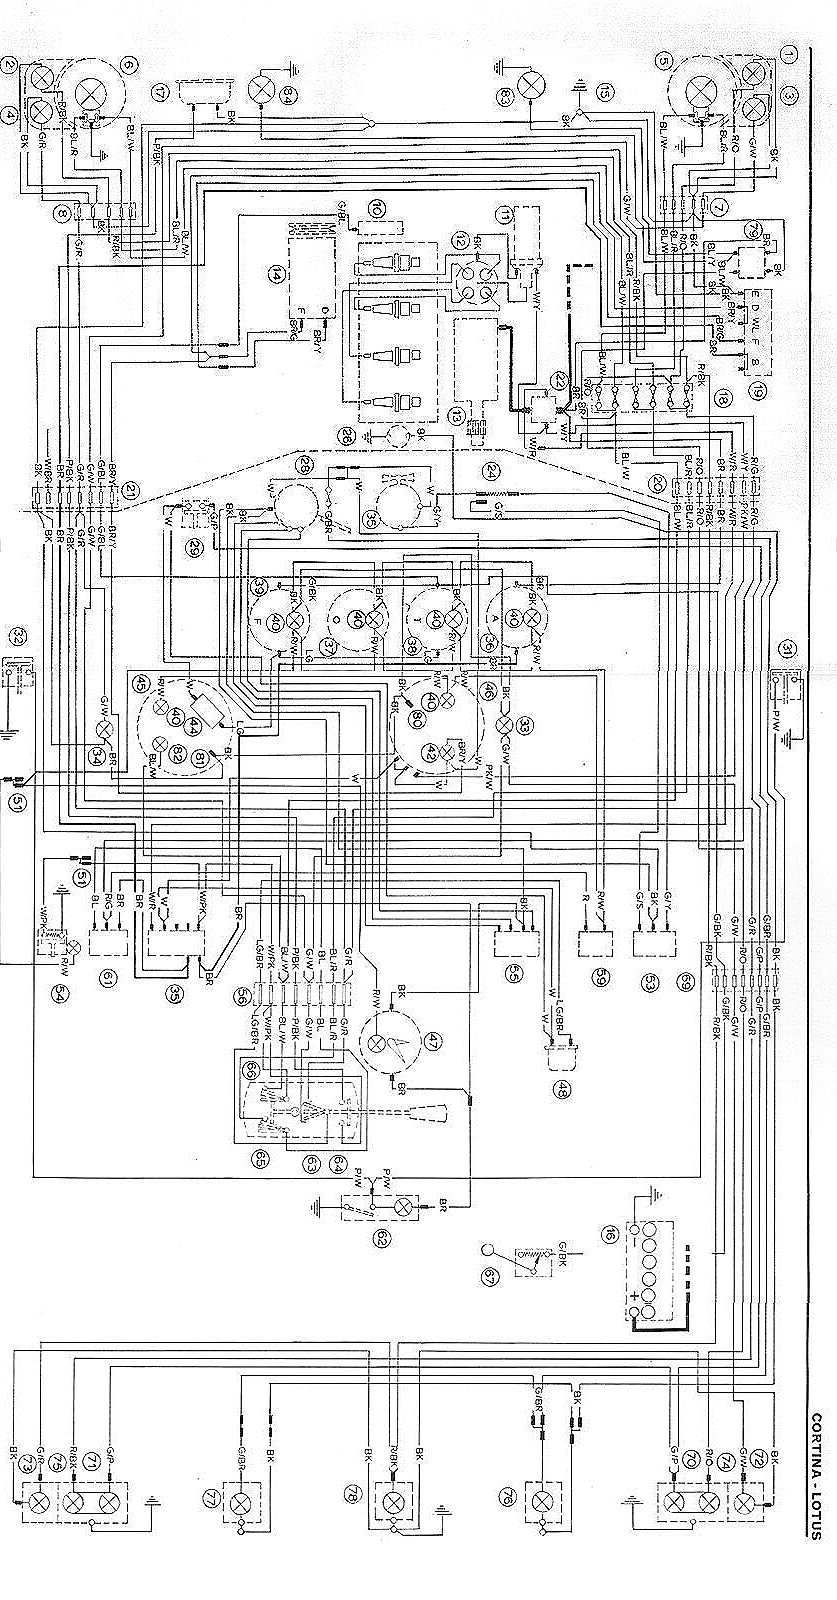 small resolution of ford escort mk2 wiring diagram download free ford galaxy wiring diagram download efcaviation